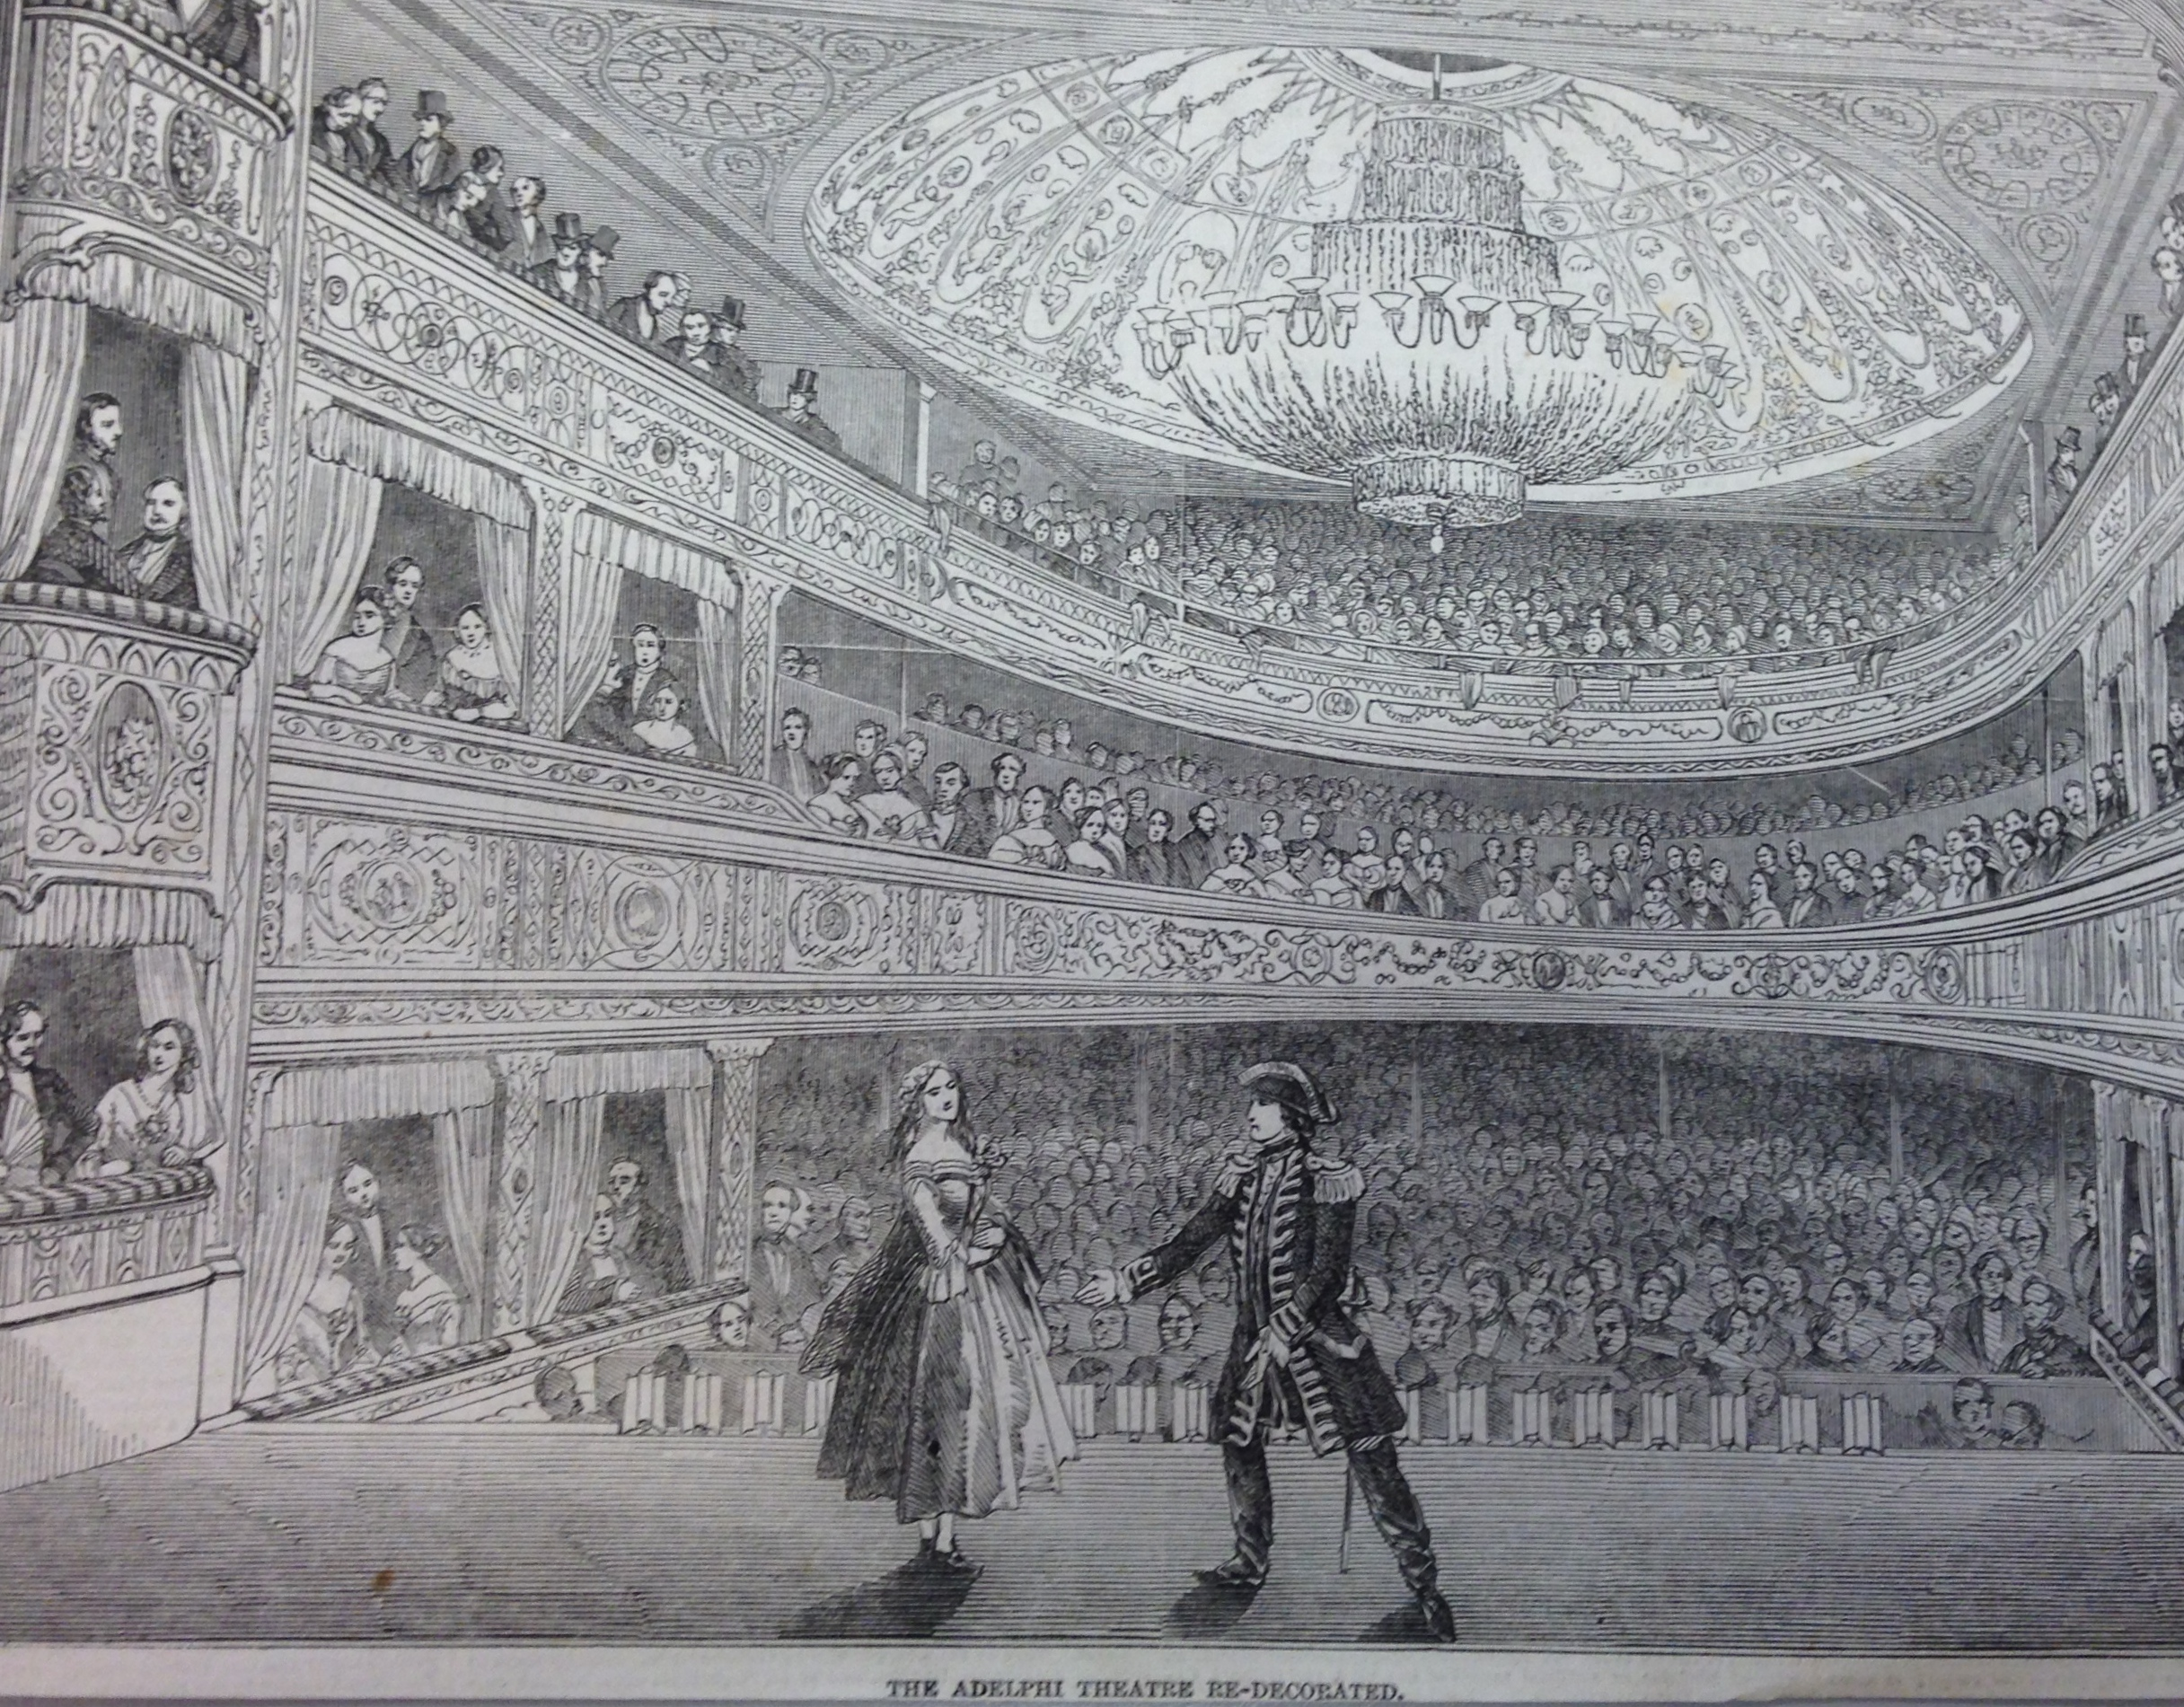 <b>Interior of Adelphi Theatre</b>     	</br>Interior of the Adelphi Theatre (previously called the Sans Pareil), London, 1848.</br><br/><b>Source: </b><i>Used with permission from the University of Bristol Theatre Collection.</i>